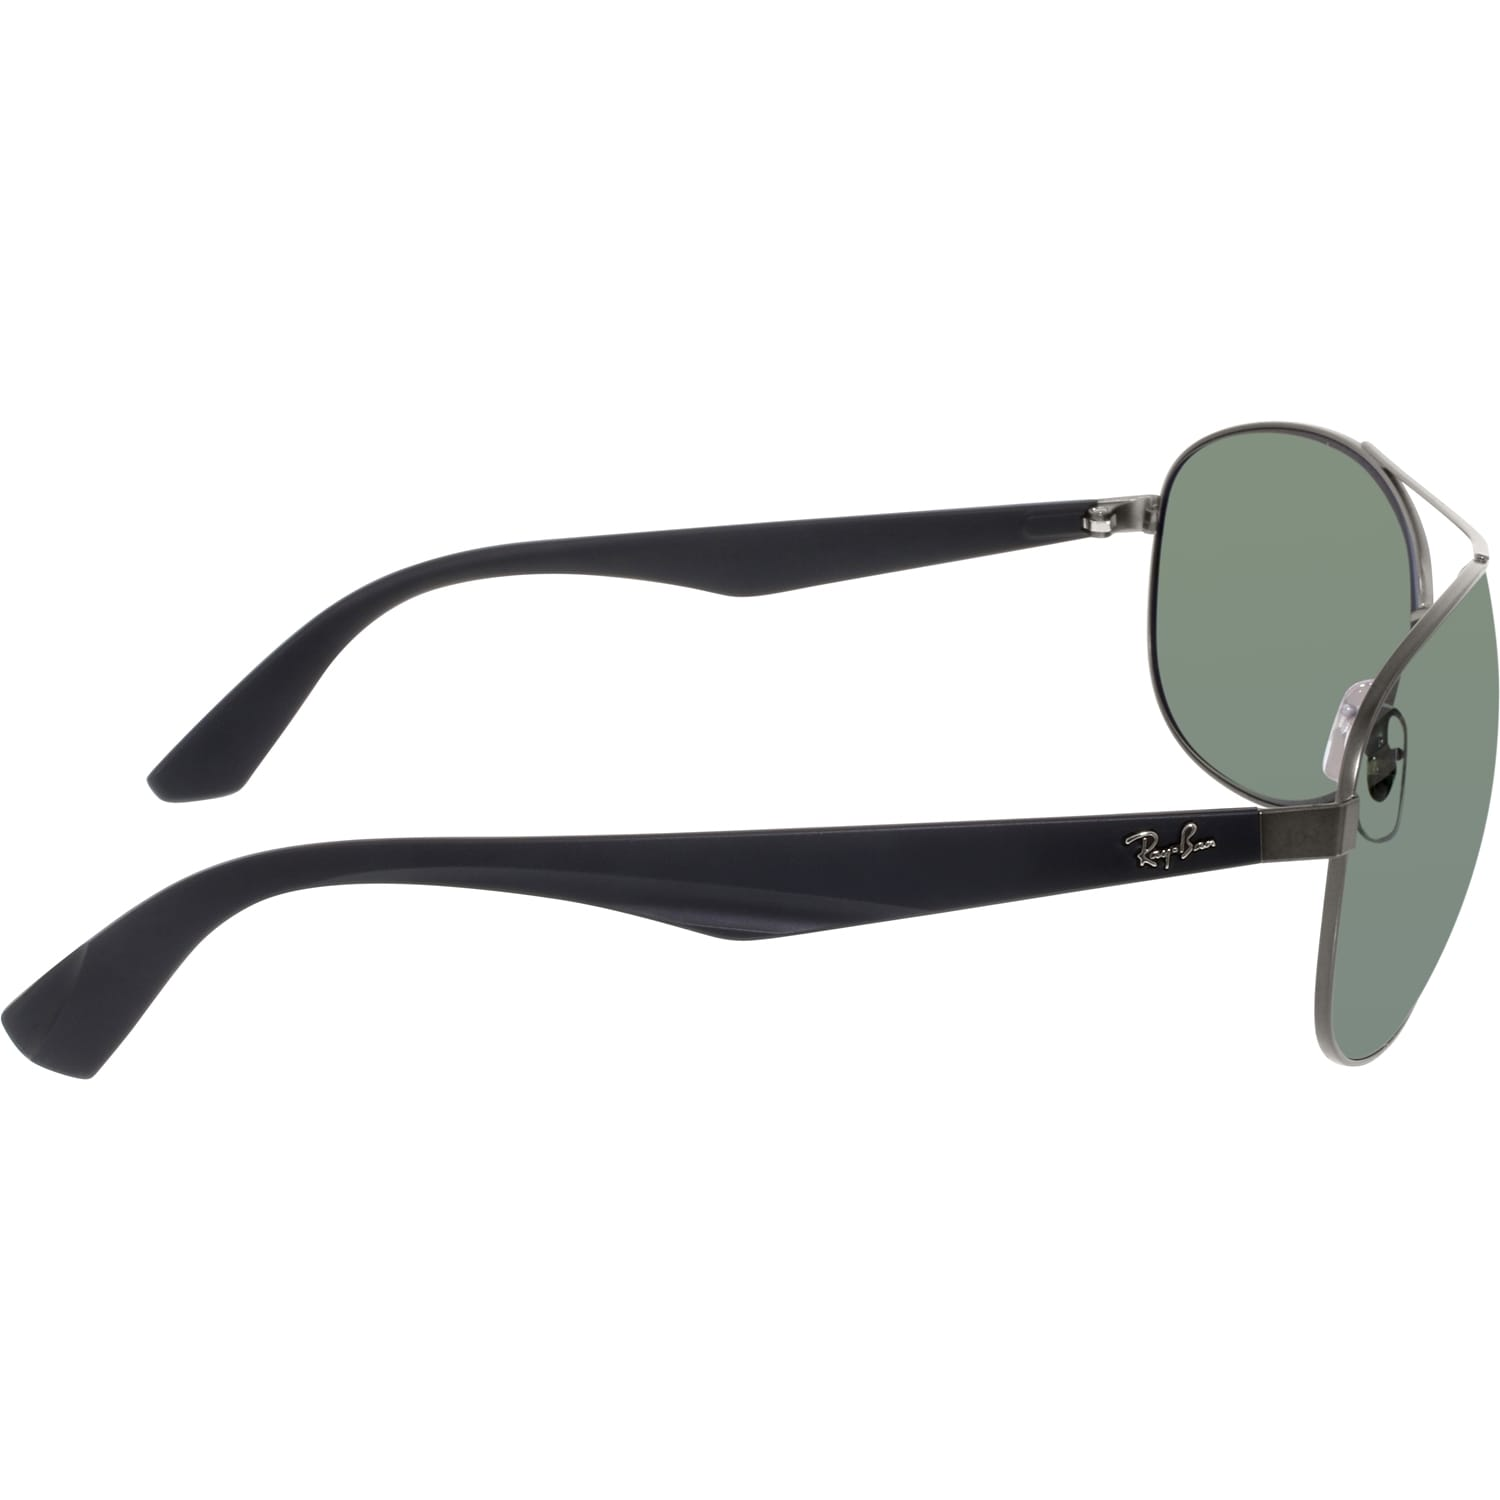 562788f3263 Shop Ray-Ban RB3526 029 9A Gunmetal Black Frame Polarized Green 63mm Lens  Sunglasses - Free Shipping Today - Overstock.com - 14328614